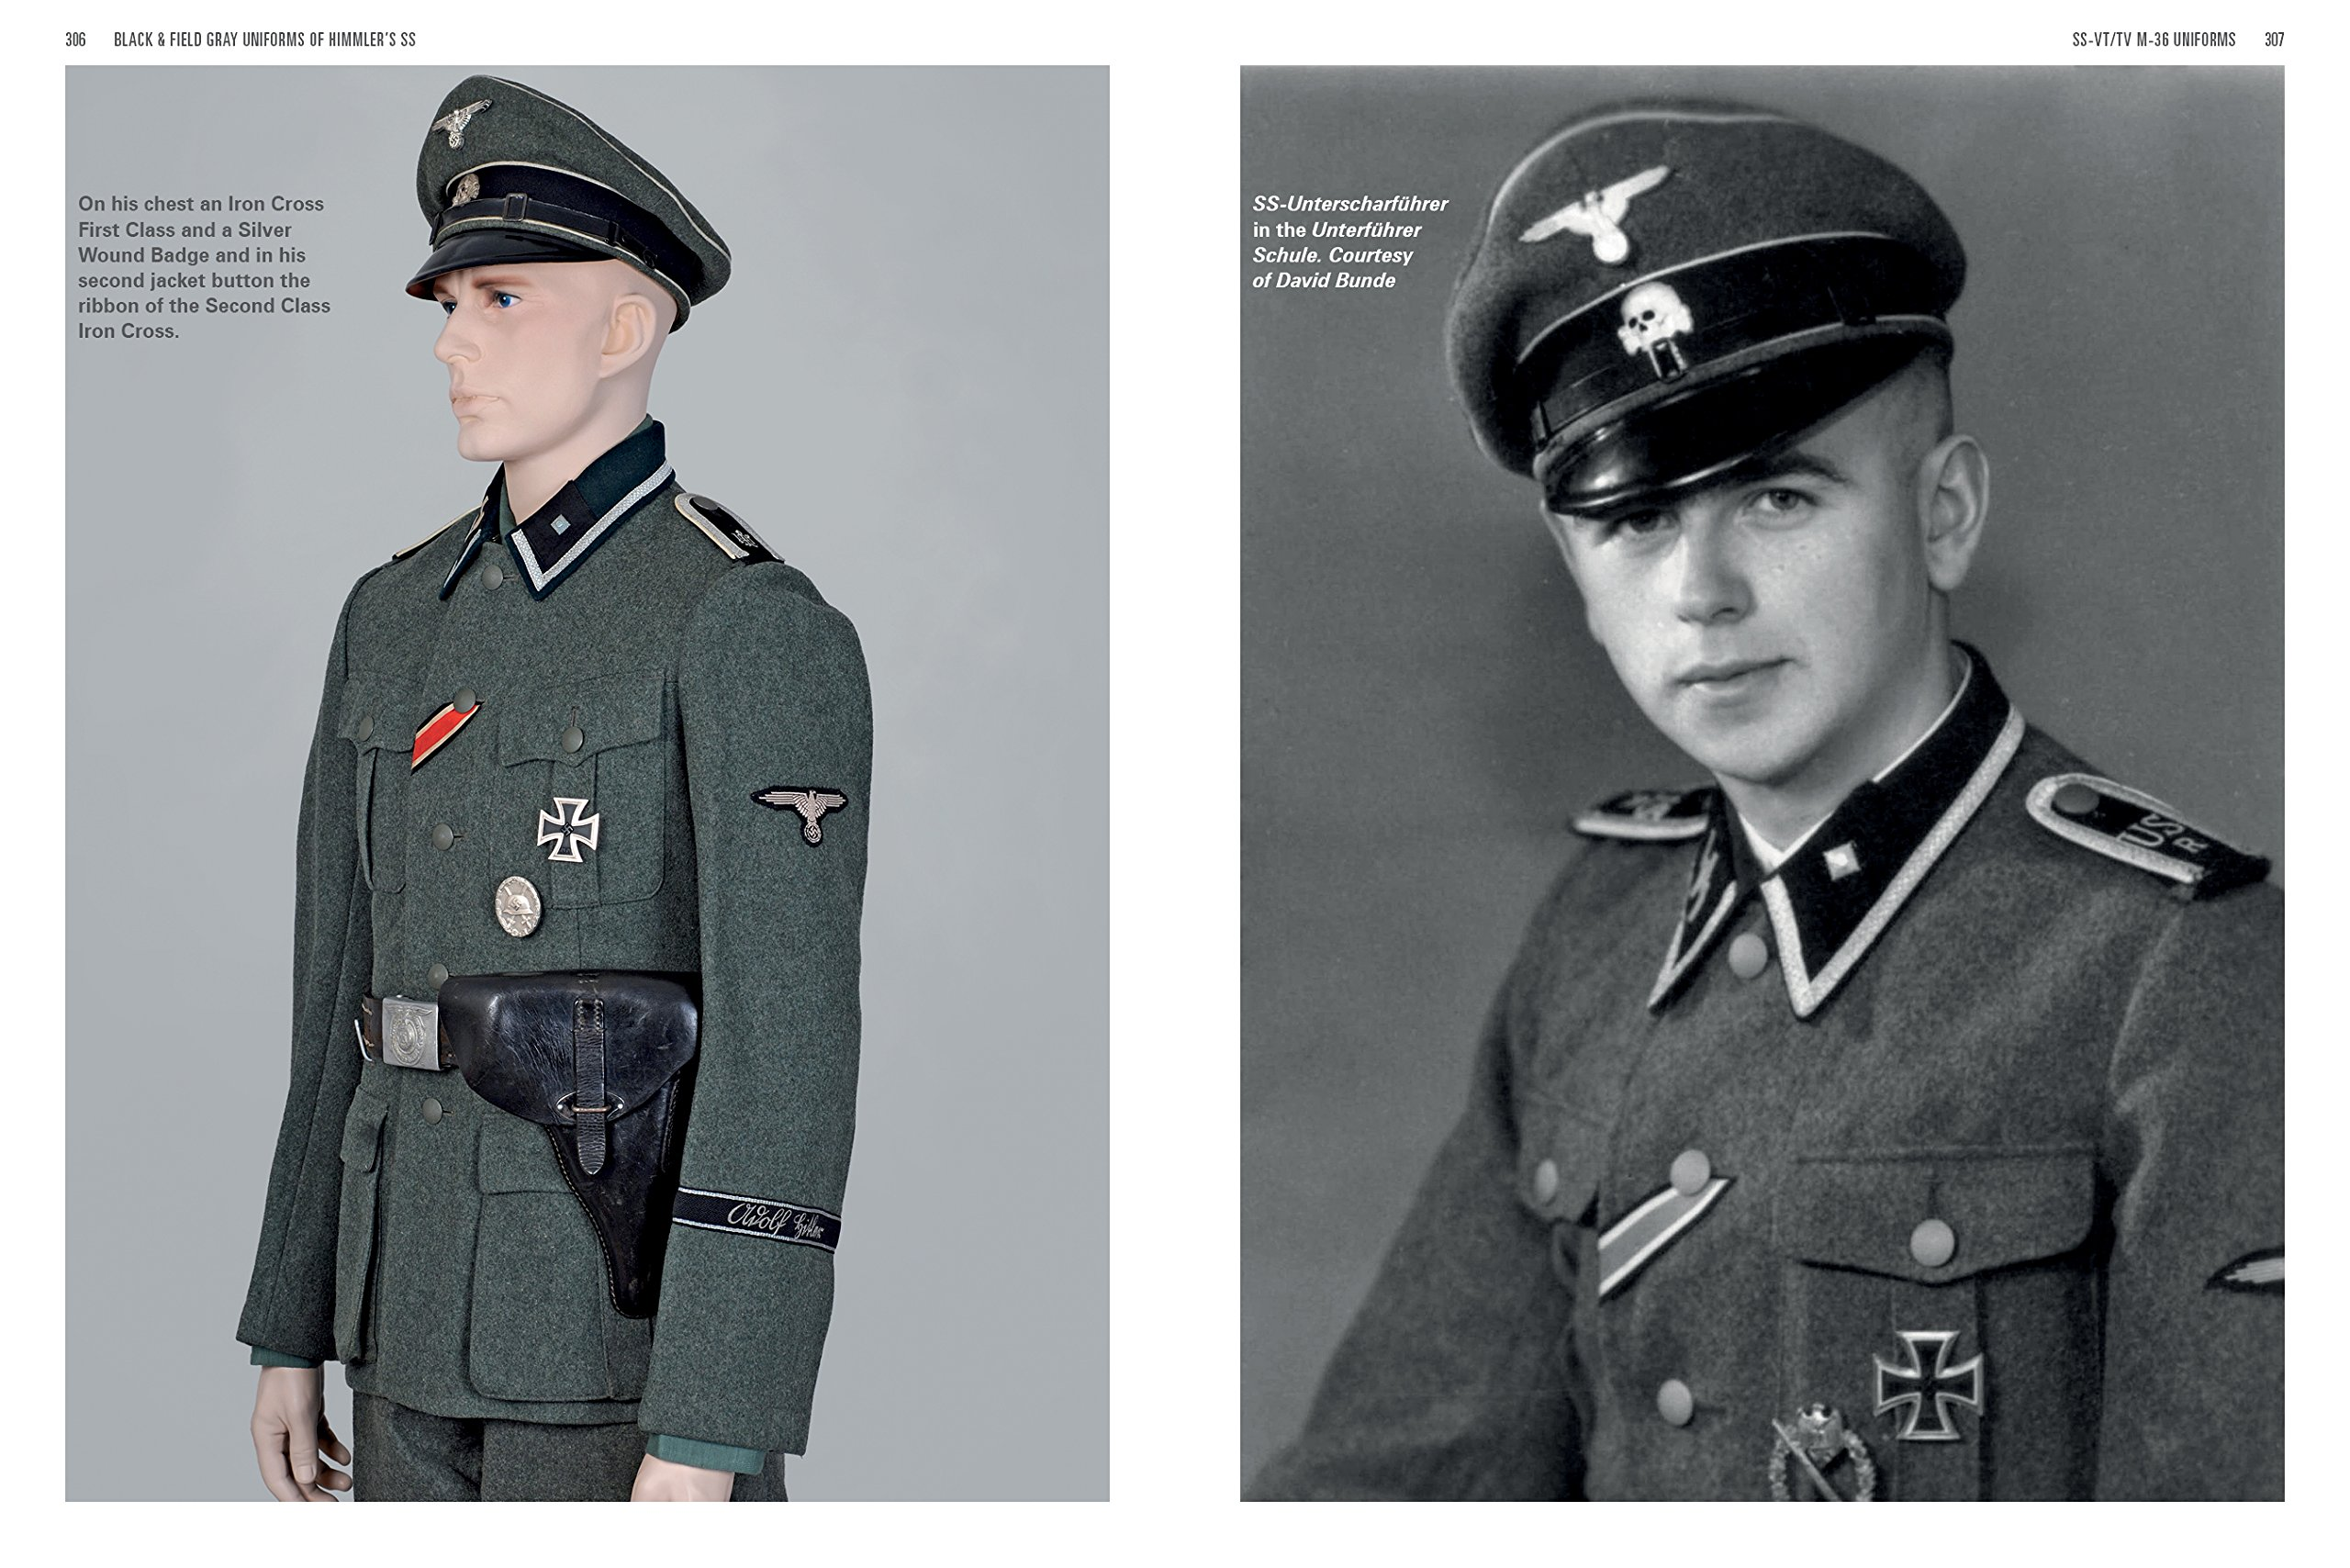 black and field gray uniforms of himmler s ss allgemeine ss ss